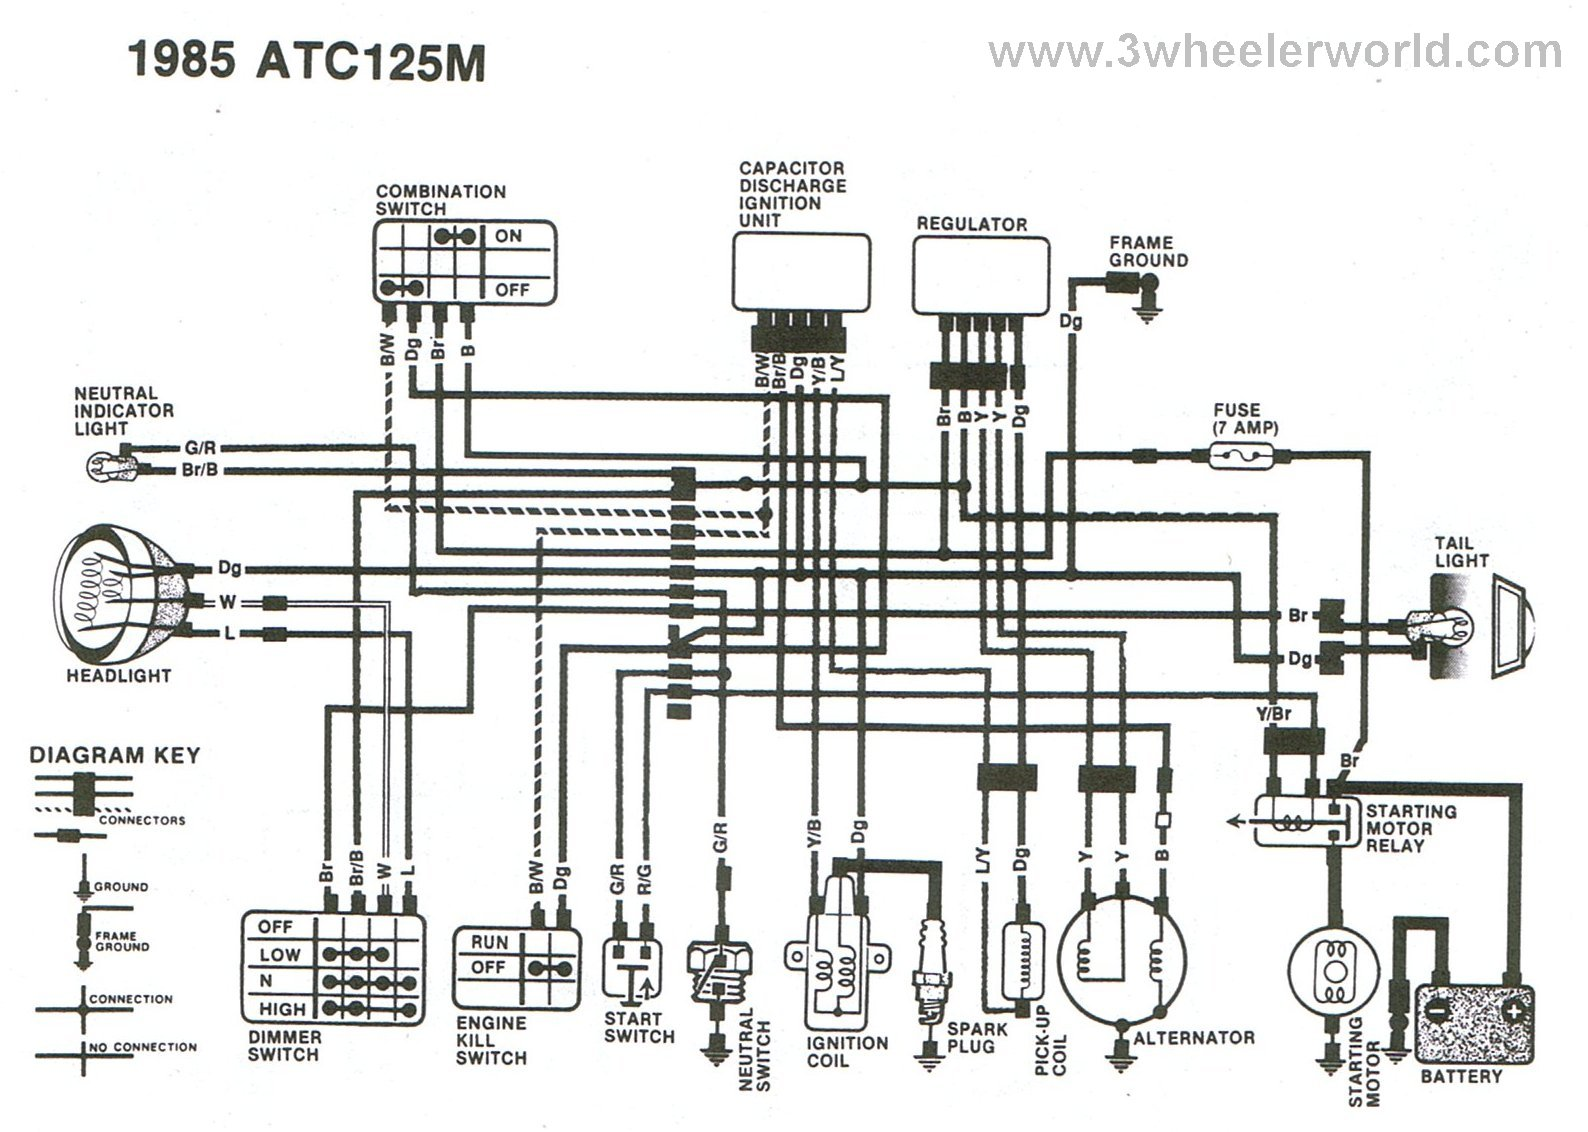 hight resolution of atc 125m wiring diagram wiring diagrams 1984 honda 125m atc wiring diagram 1985 atc 125m wiring